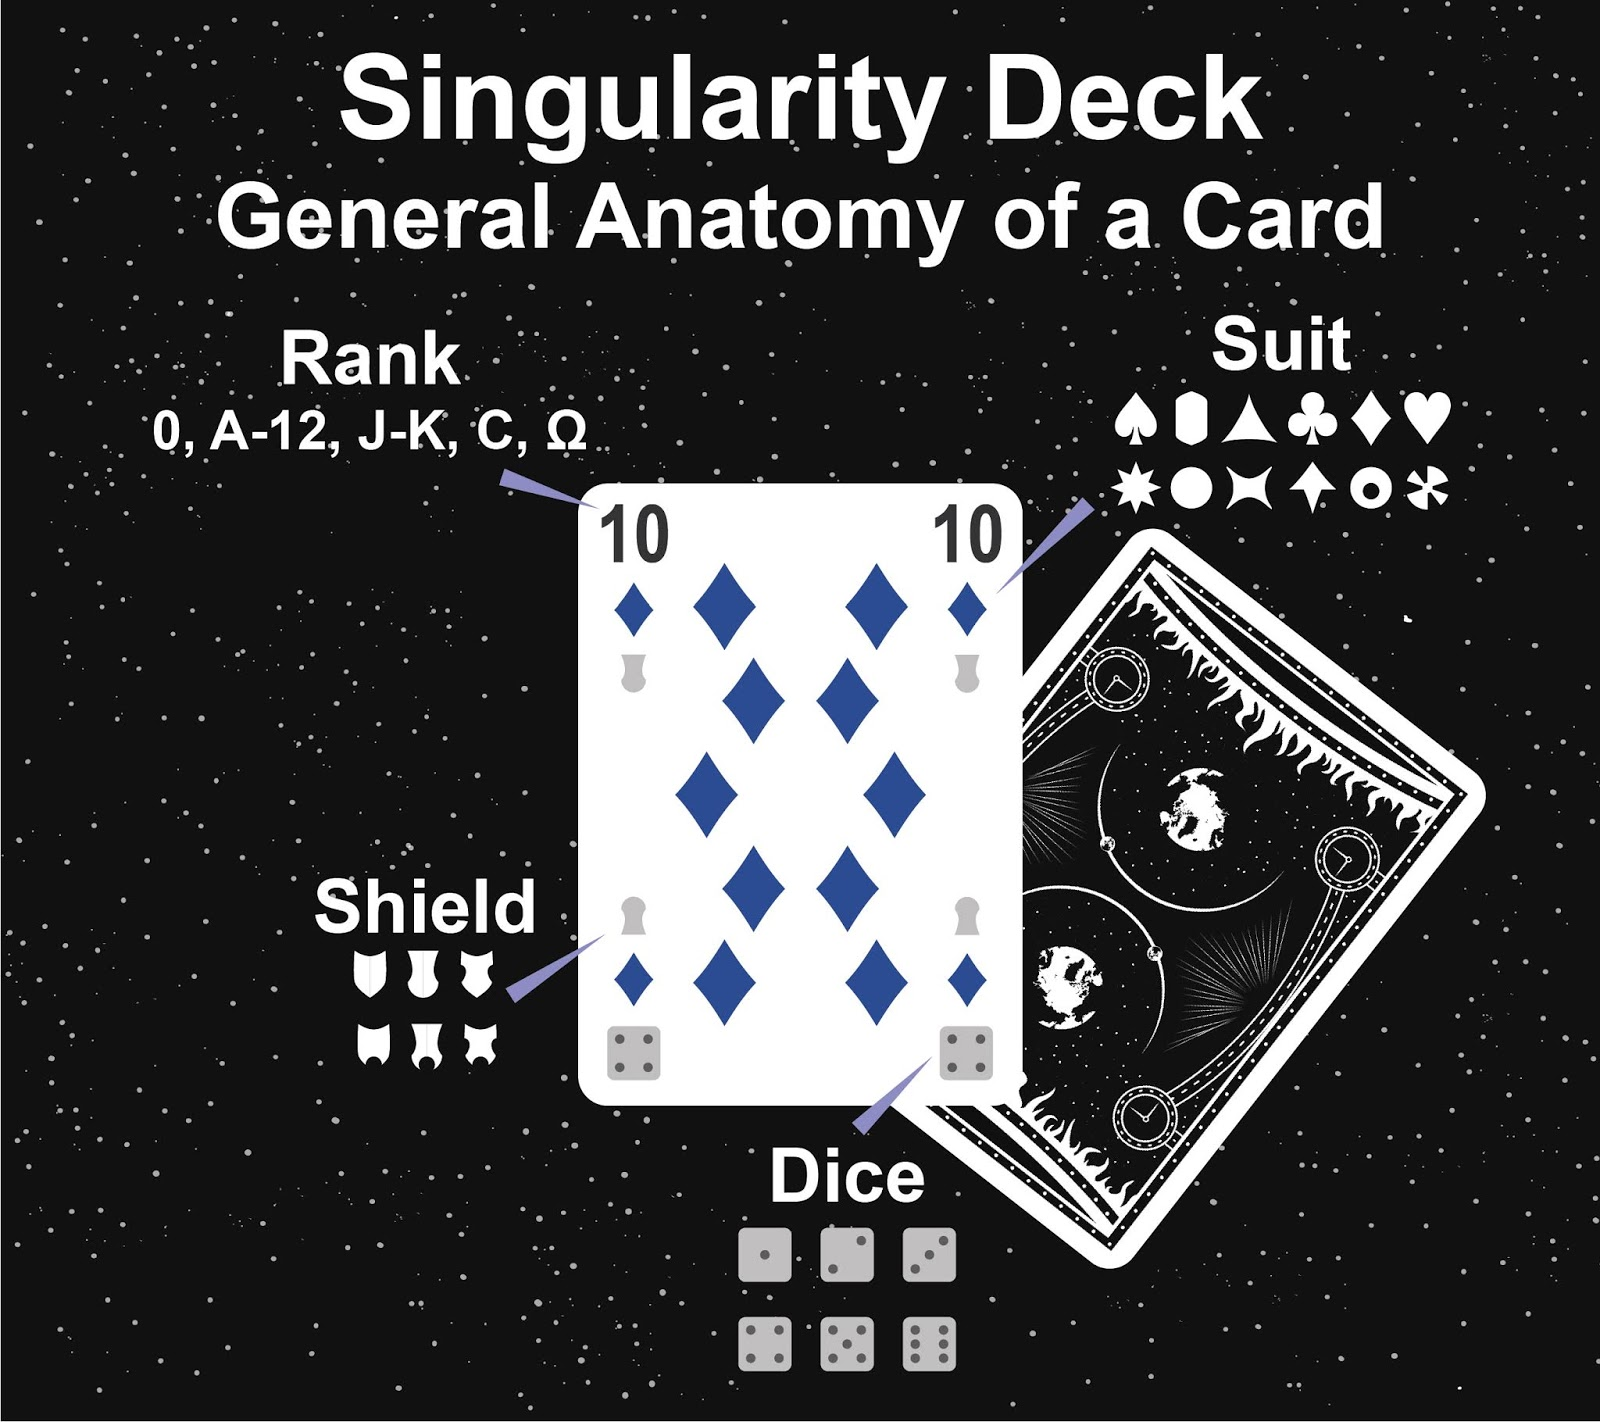 The Singularity Deck - Cosmos Card Anatomy